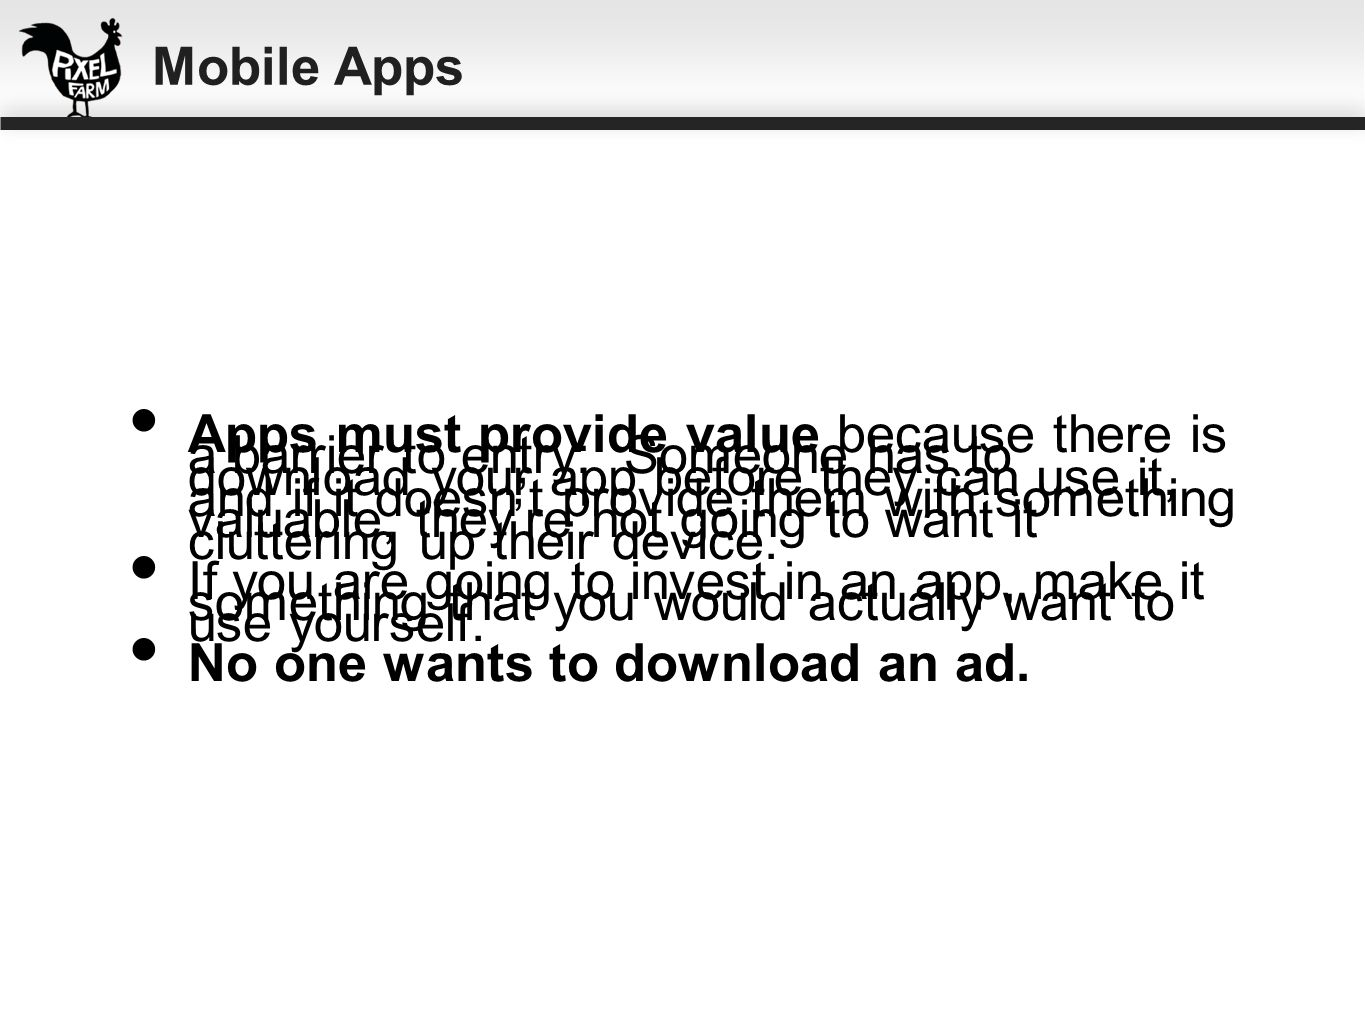 Apps must provide value because there is a barrier to entry: Someone has to download your app before they can use it, and if it doesnt provide them wi